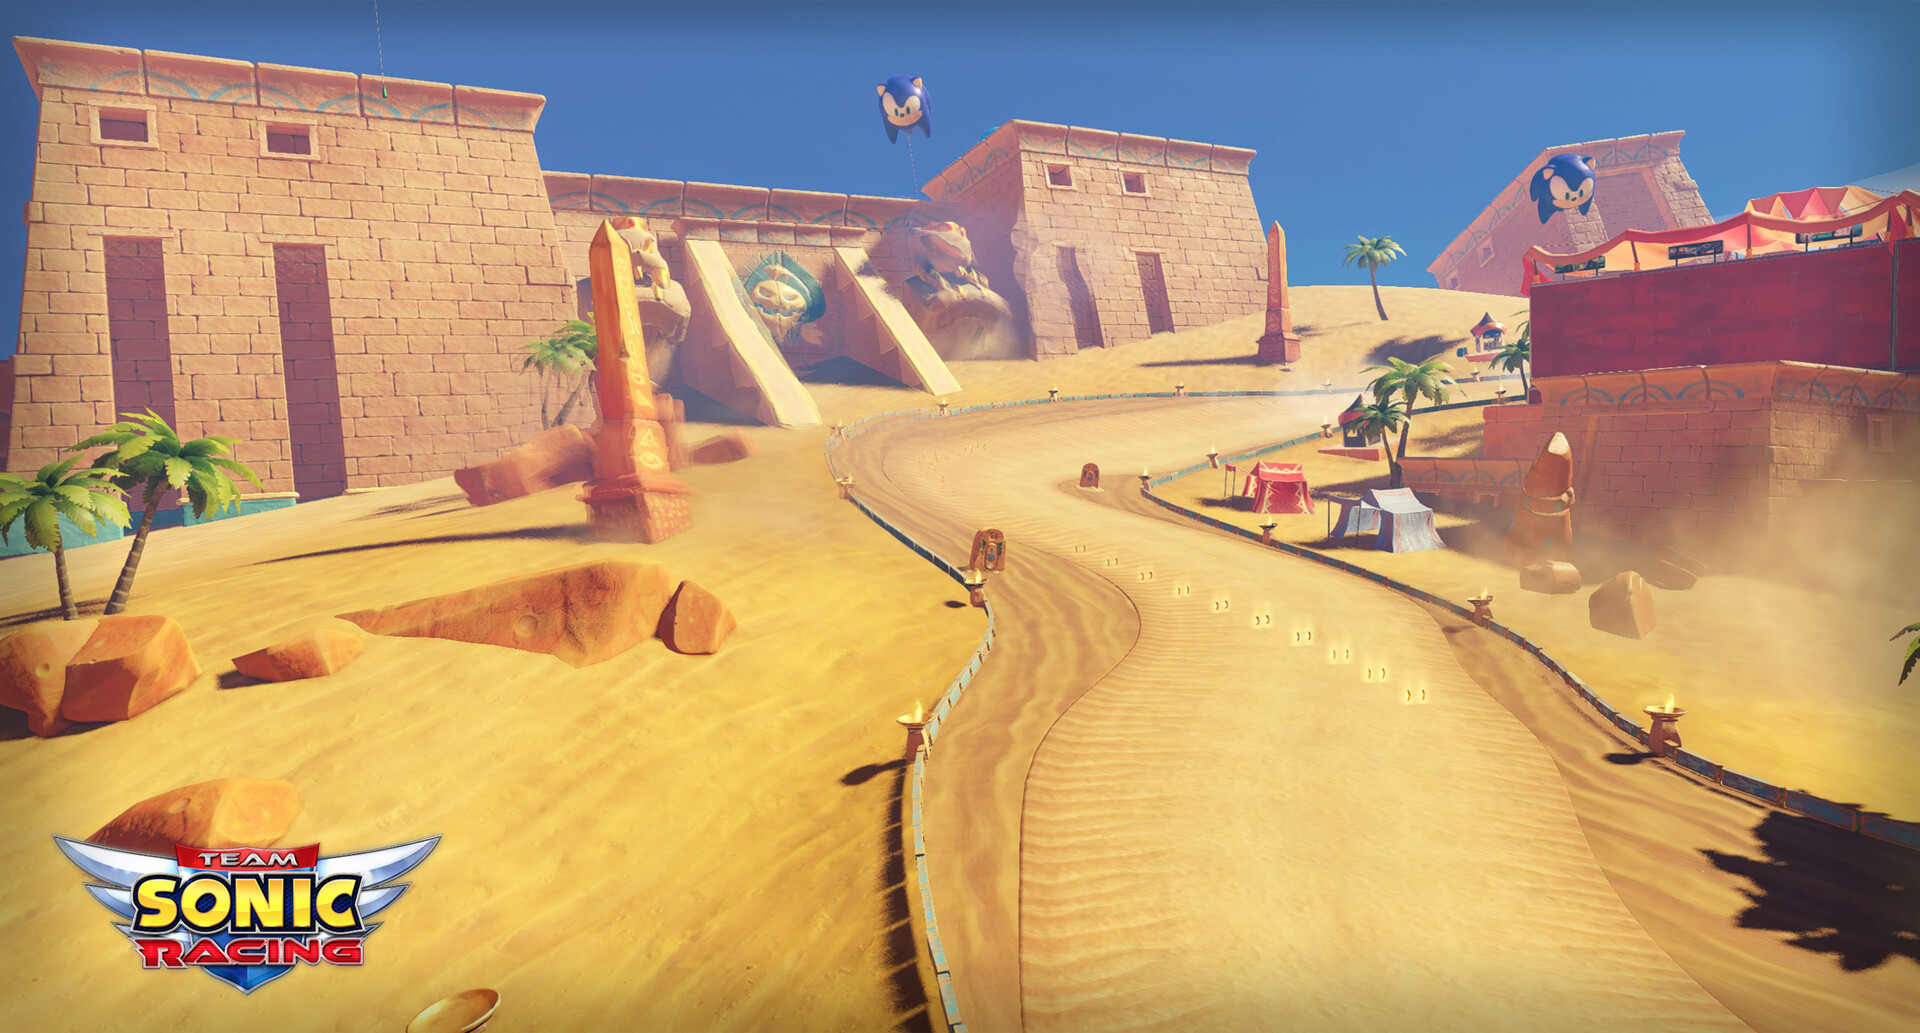 Harry Buckley Robins Team Sonic Racing Sand Road